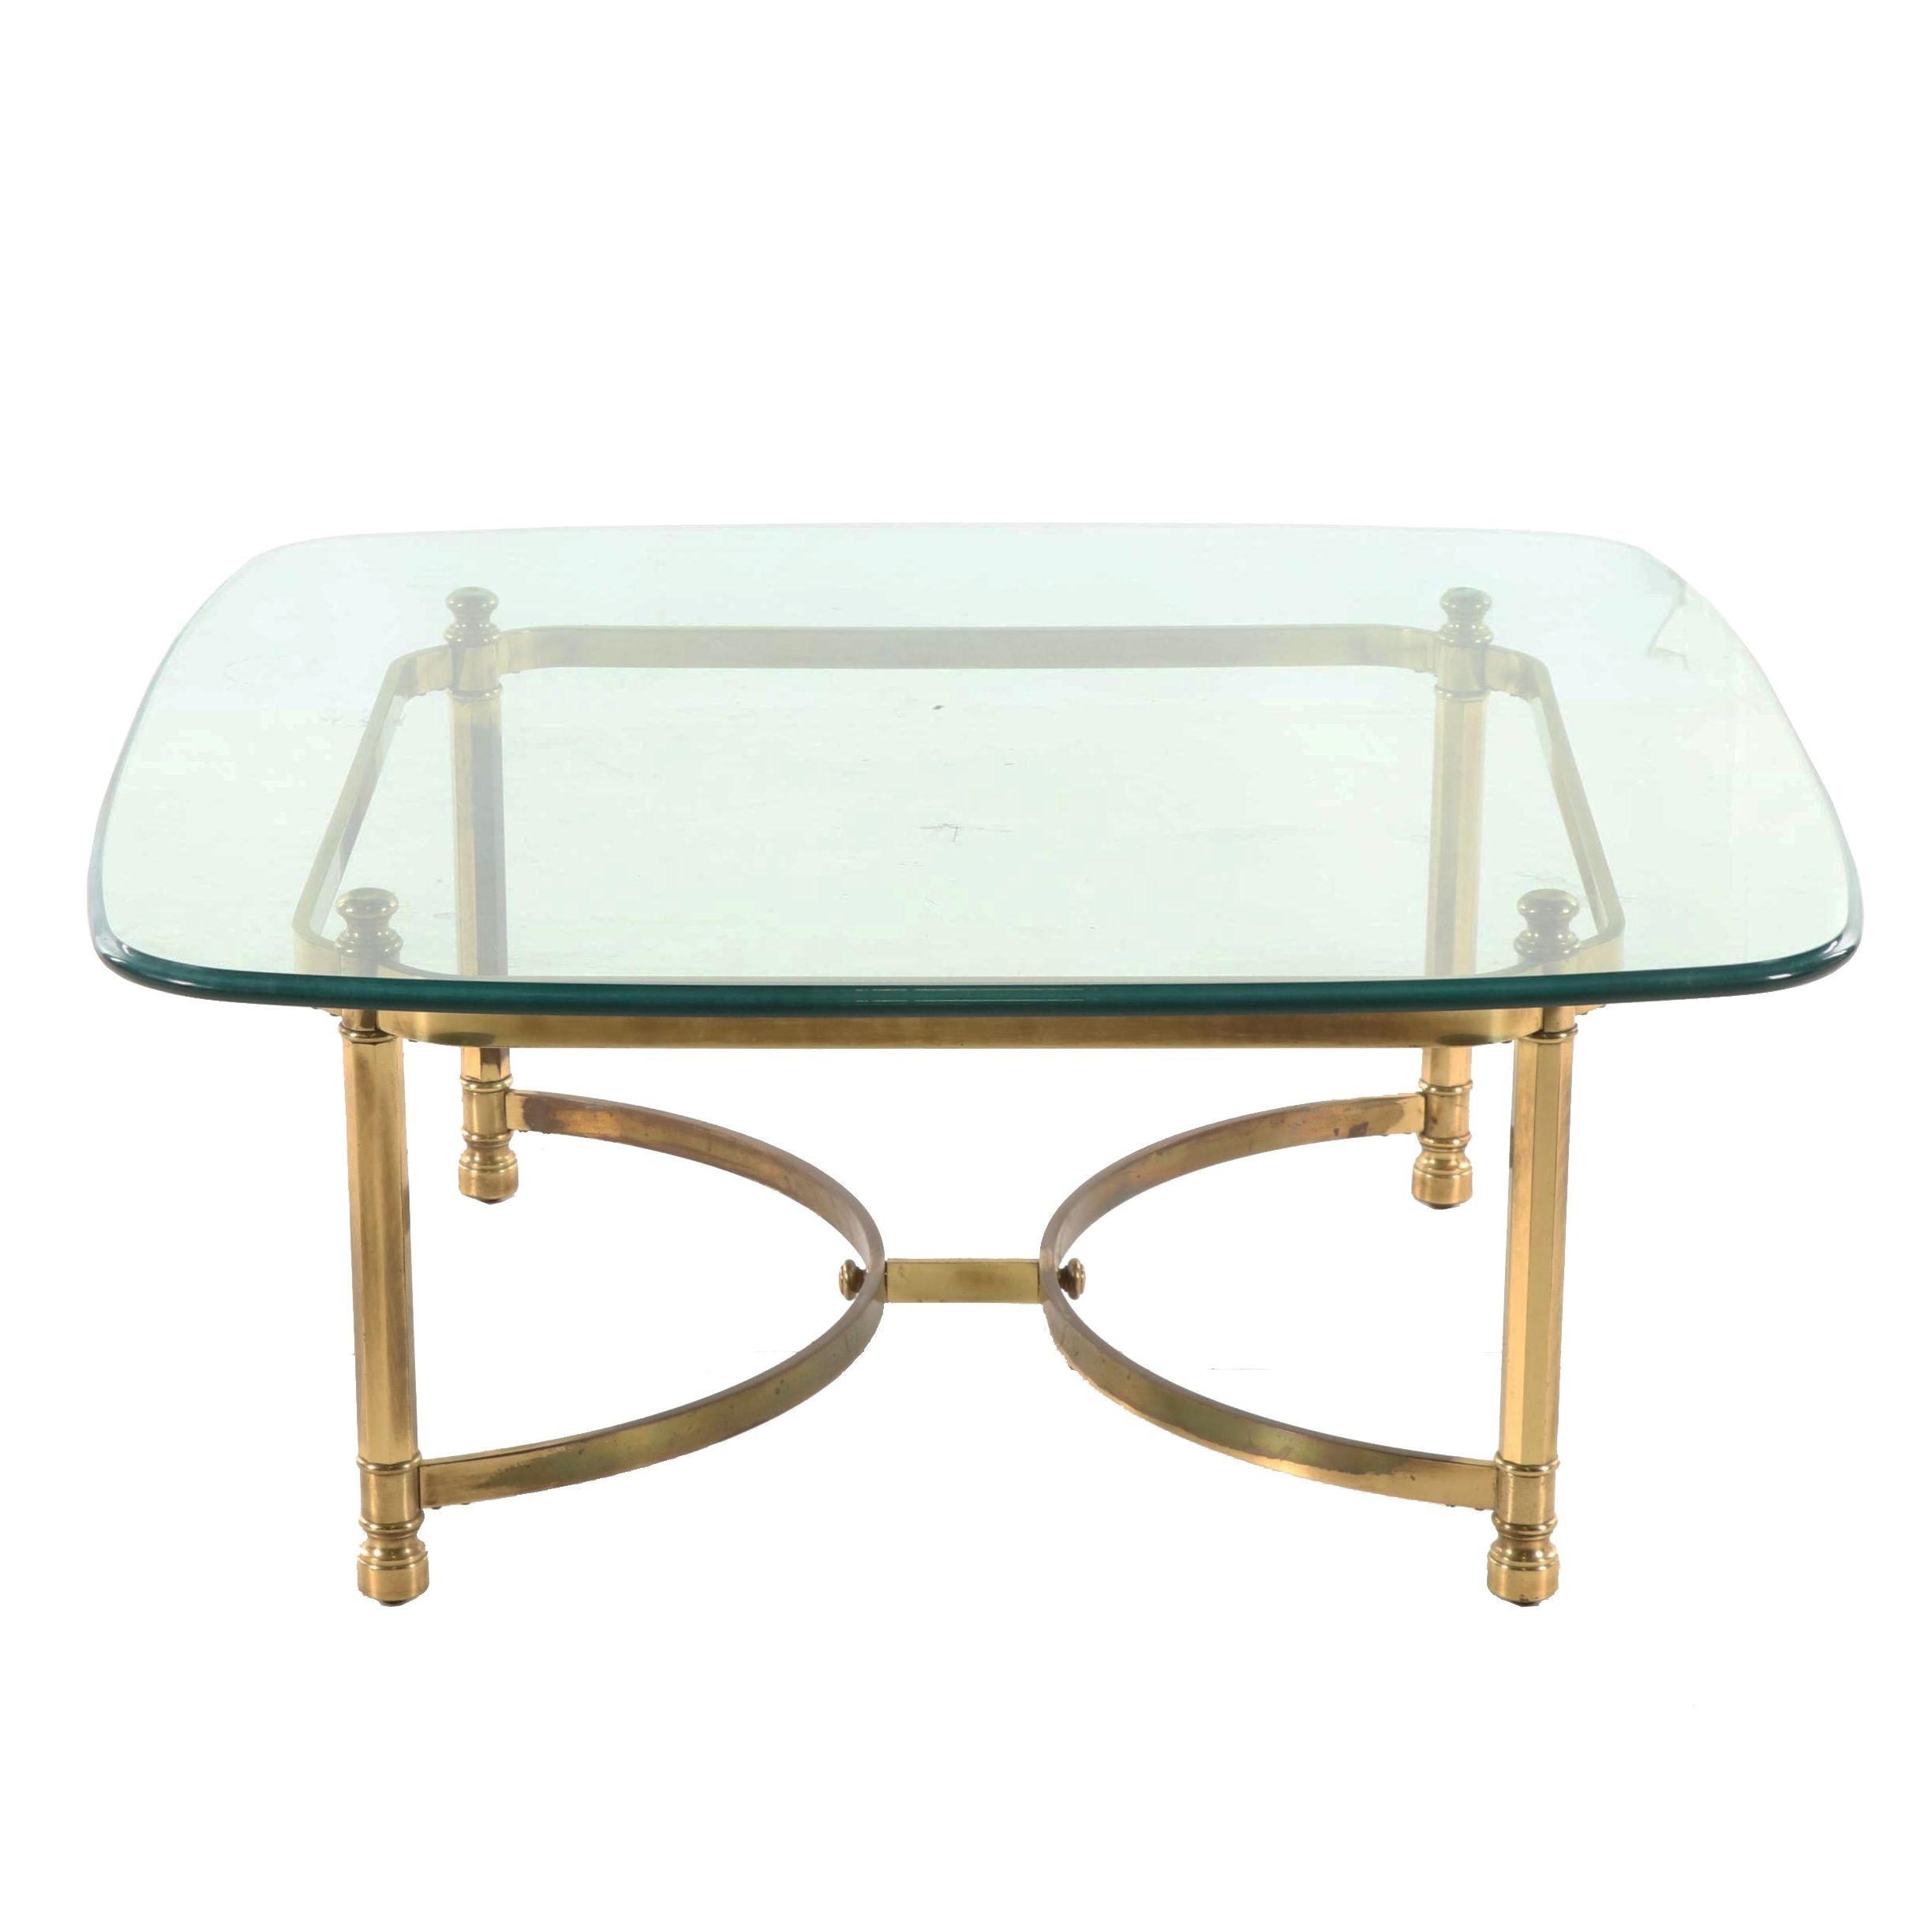 Hollywood Regency Style Brass and Glass Coffee Table, Late 20th Century